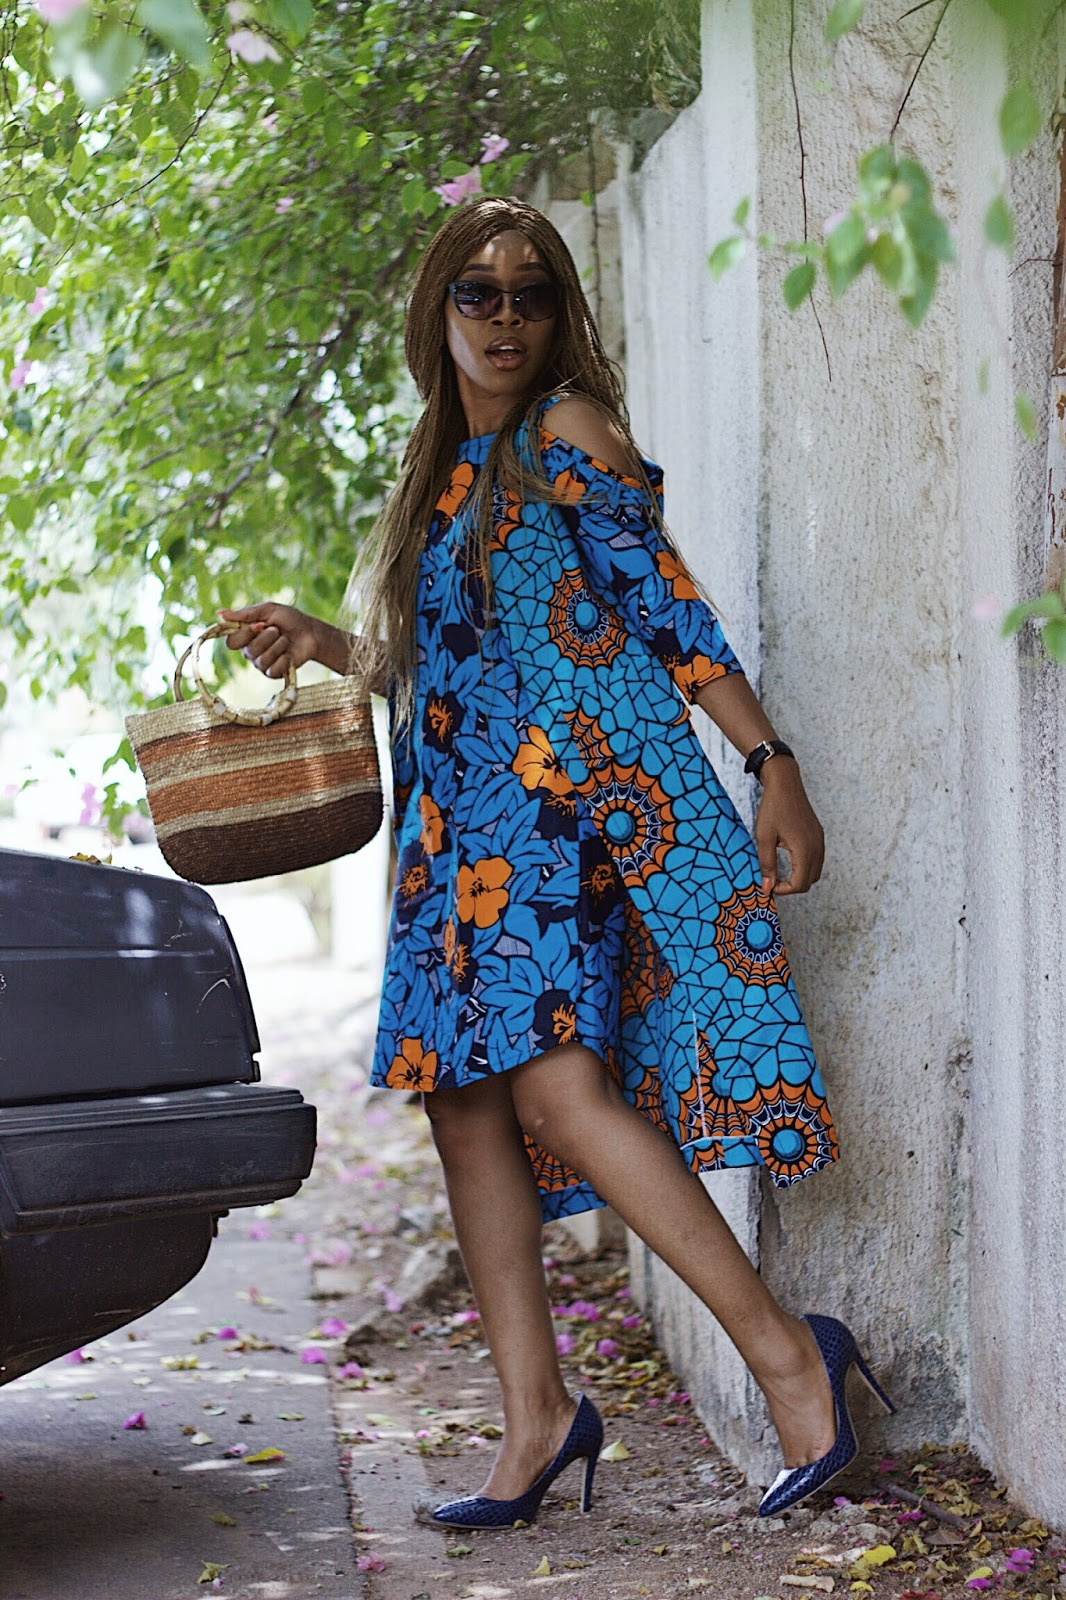 HOW TO STYLE AN UNCONVENTIONAL ANKARA TWO PIECE